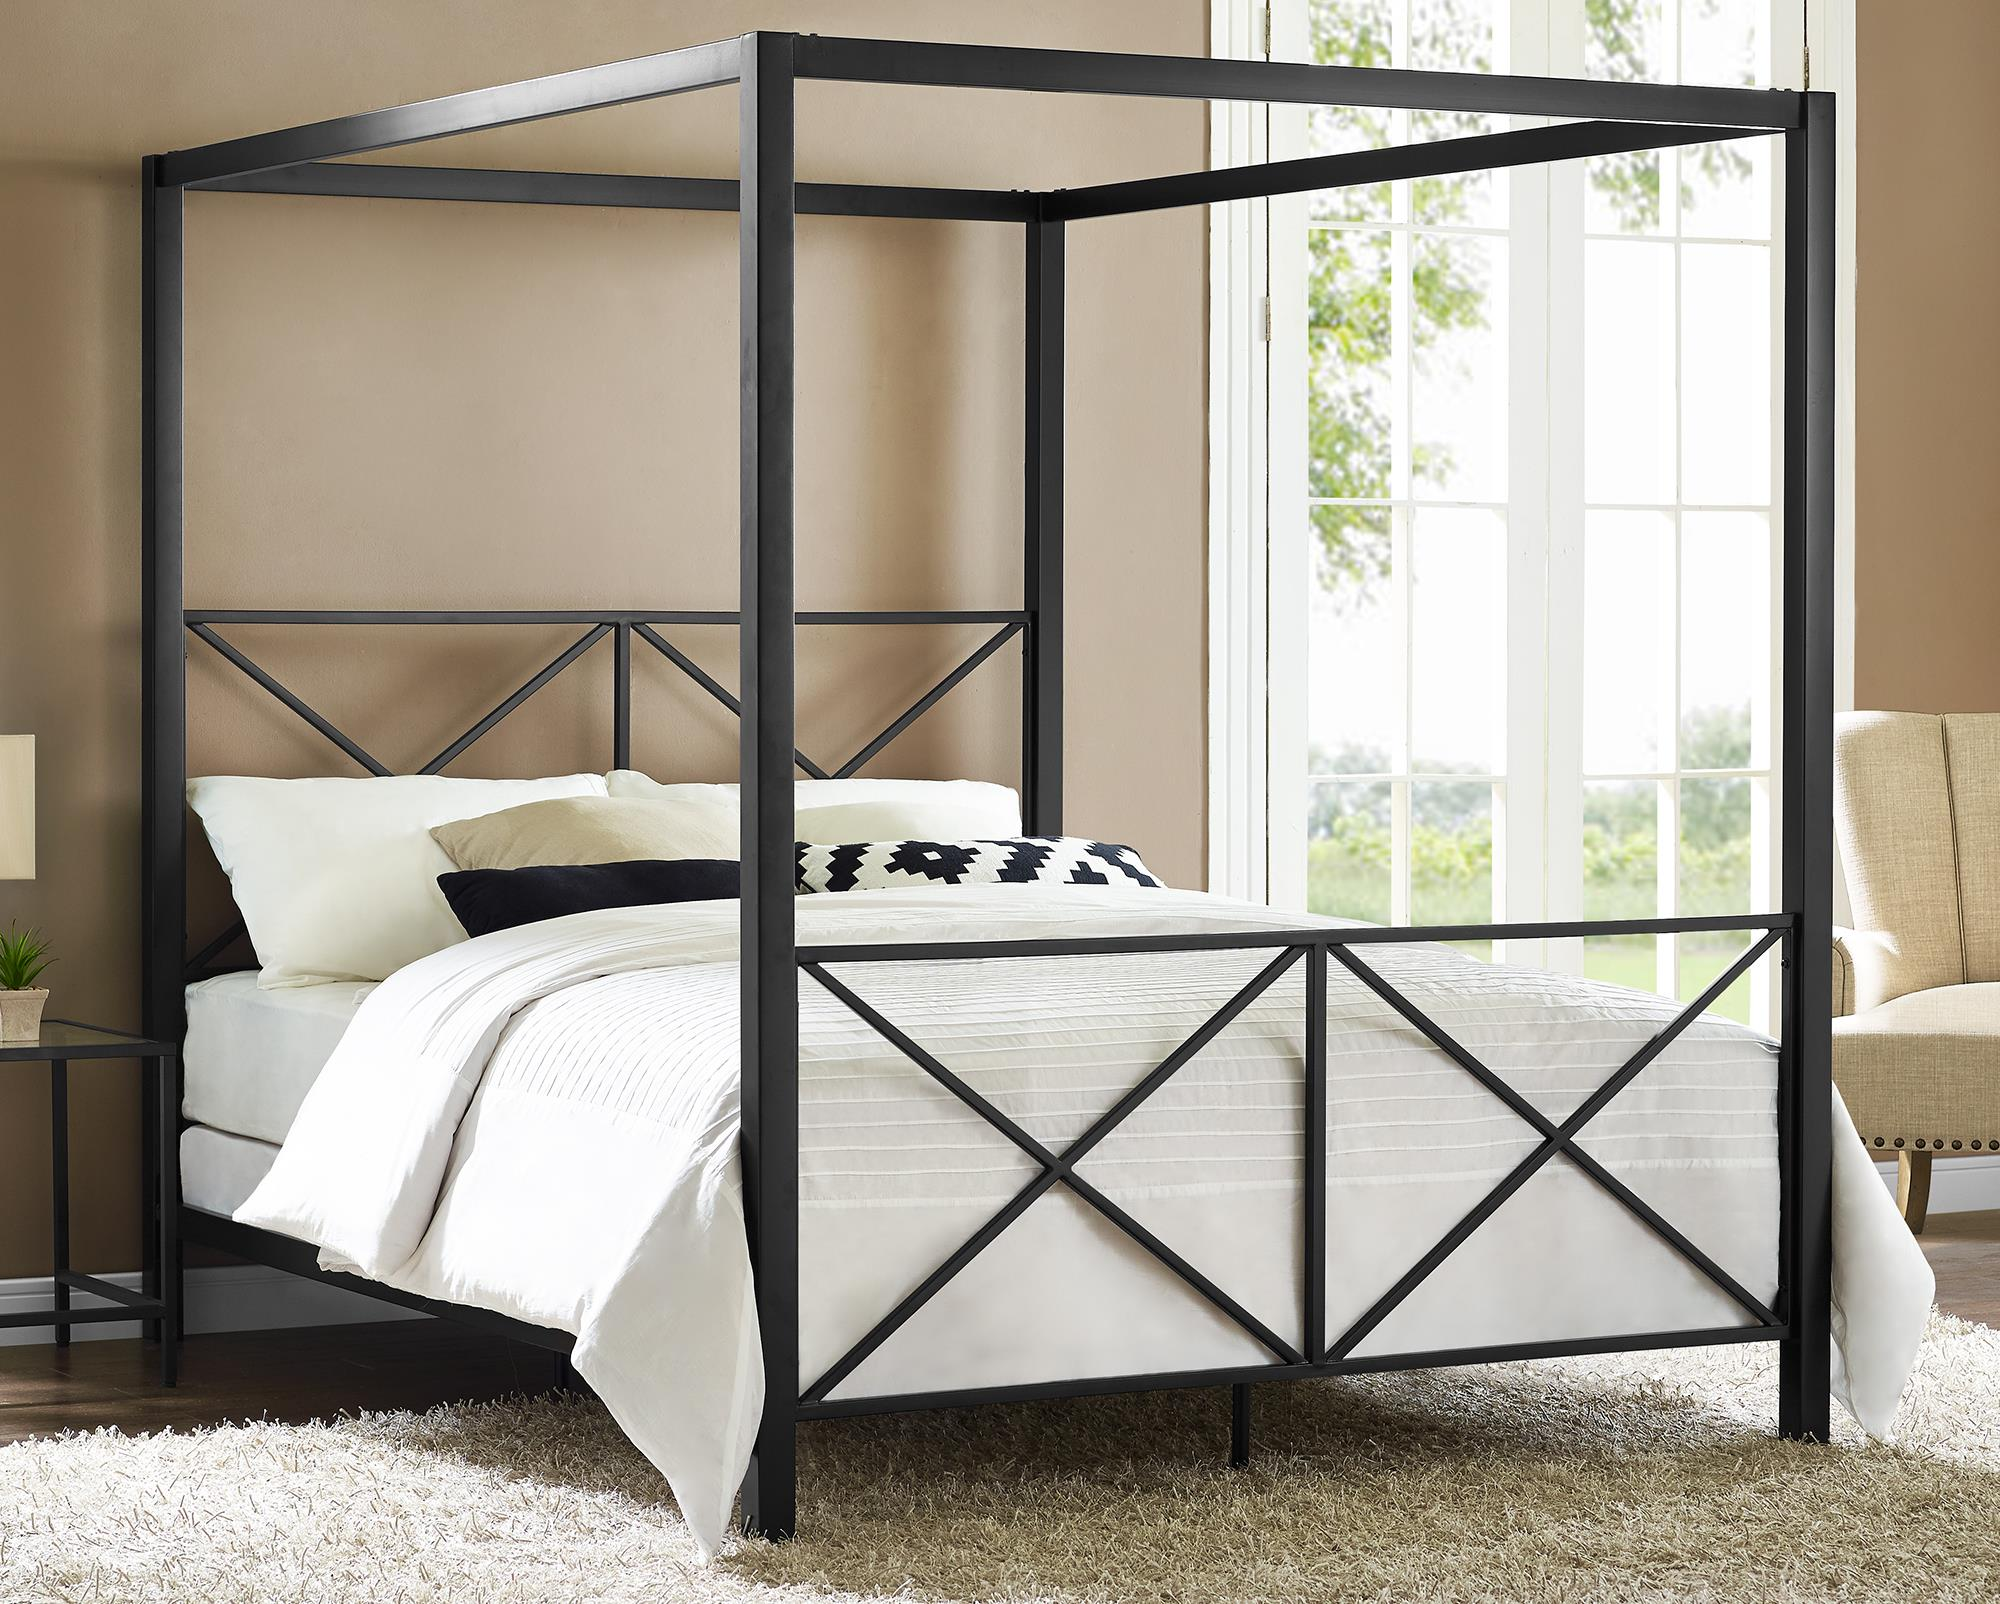 The Dhp Rosedale Metal Canopy Queen Bed Is A Sleek And Modern Bed